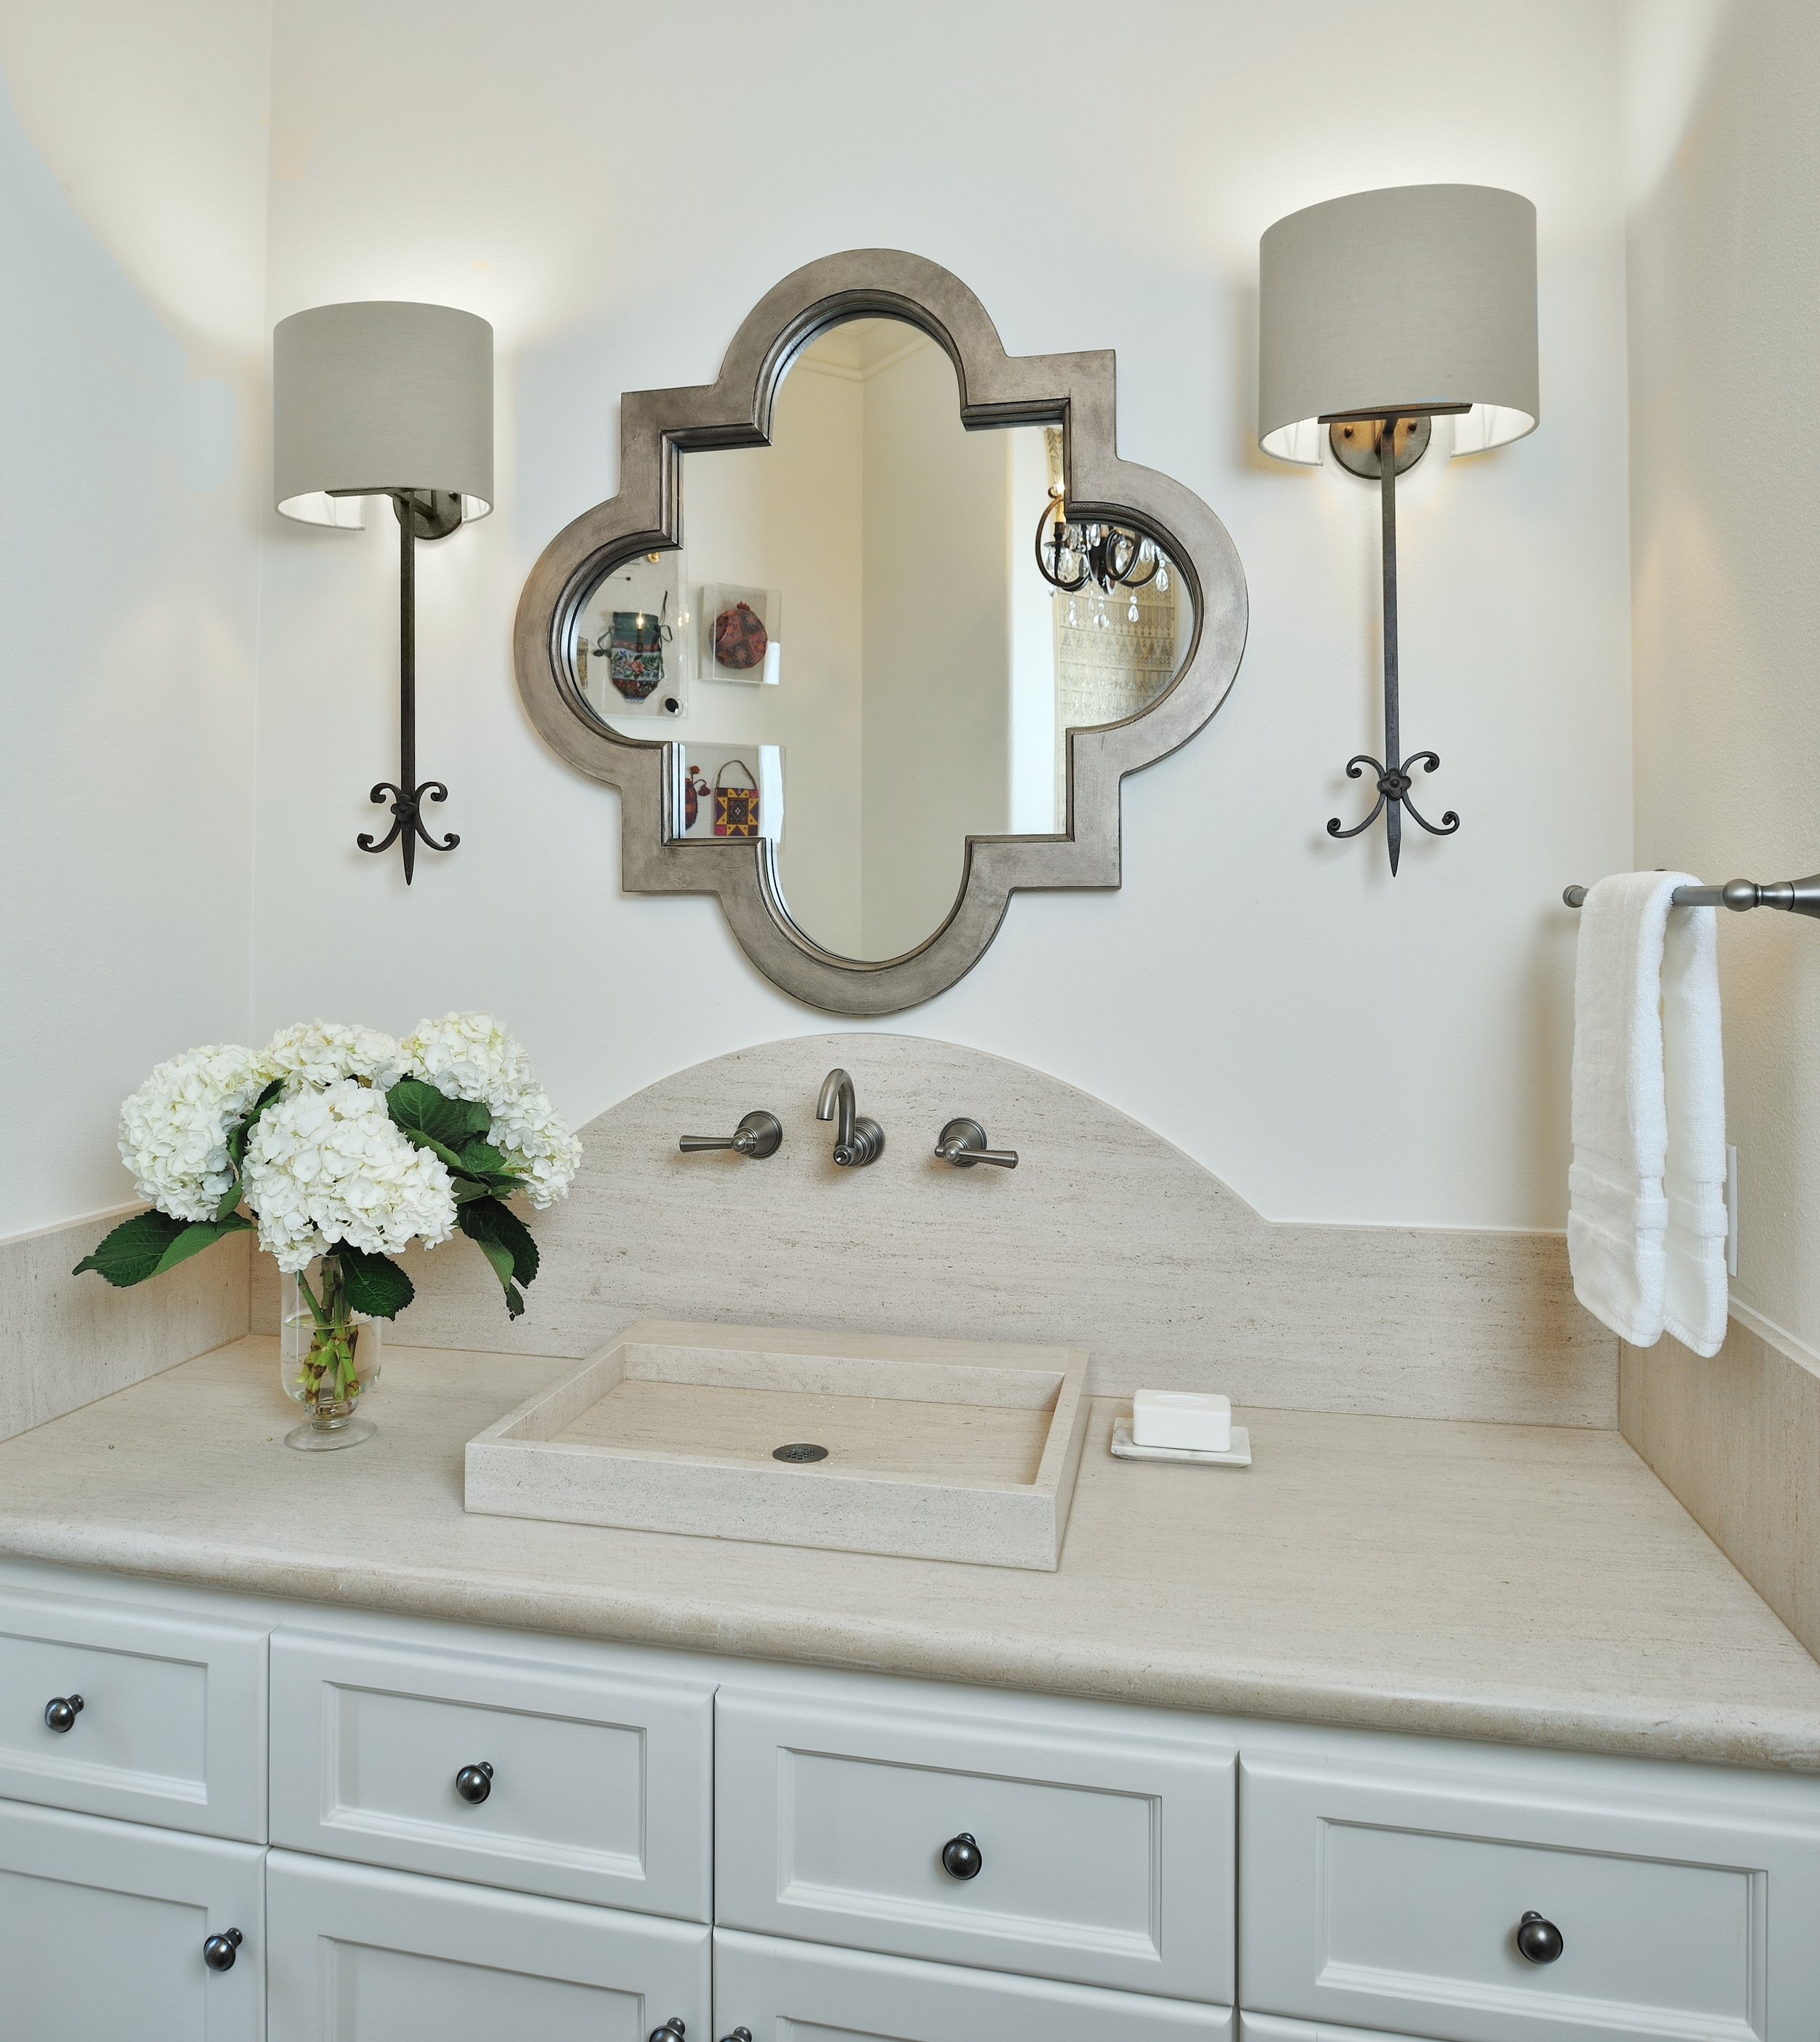 HOME TOUR - The limestone counter, curved splash and sink create a simple, seamless look in this powder bath. The quatrefoil custom mirror and sconces add interest. Carla Aston, Designer | Miro Dvorscak, Photographer #bohostyle #hometour #remodel #powderbath